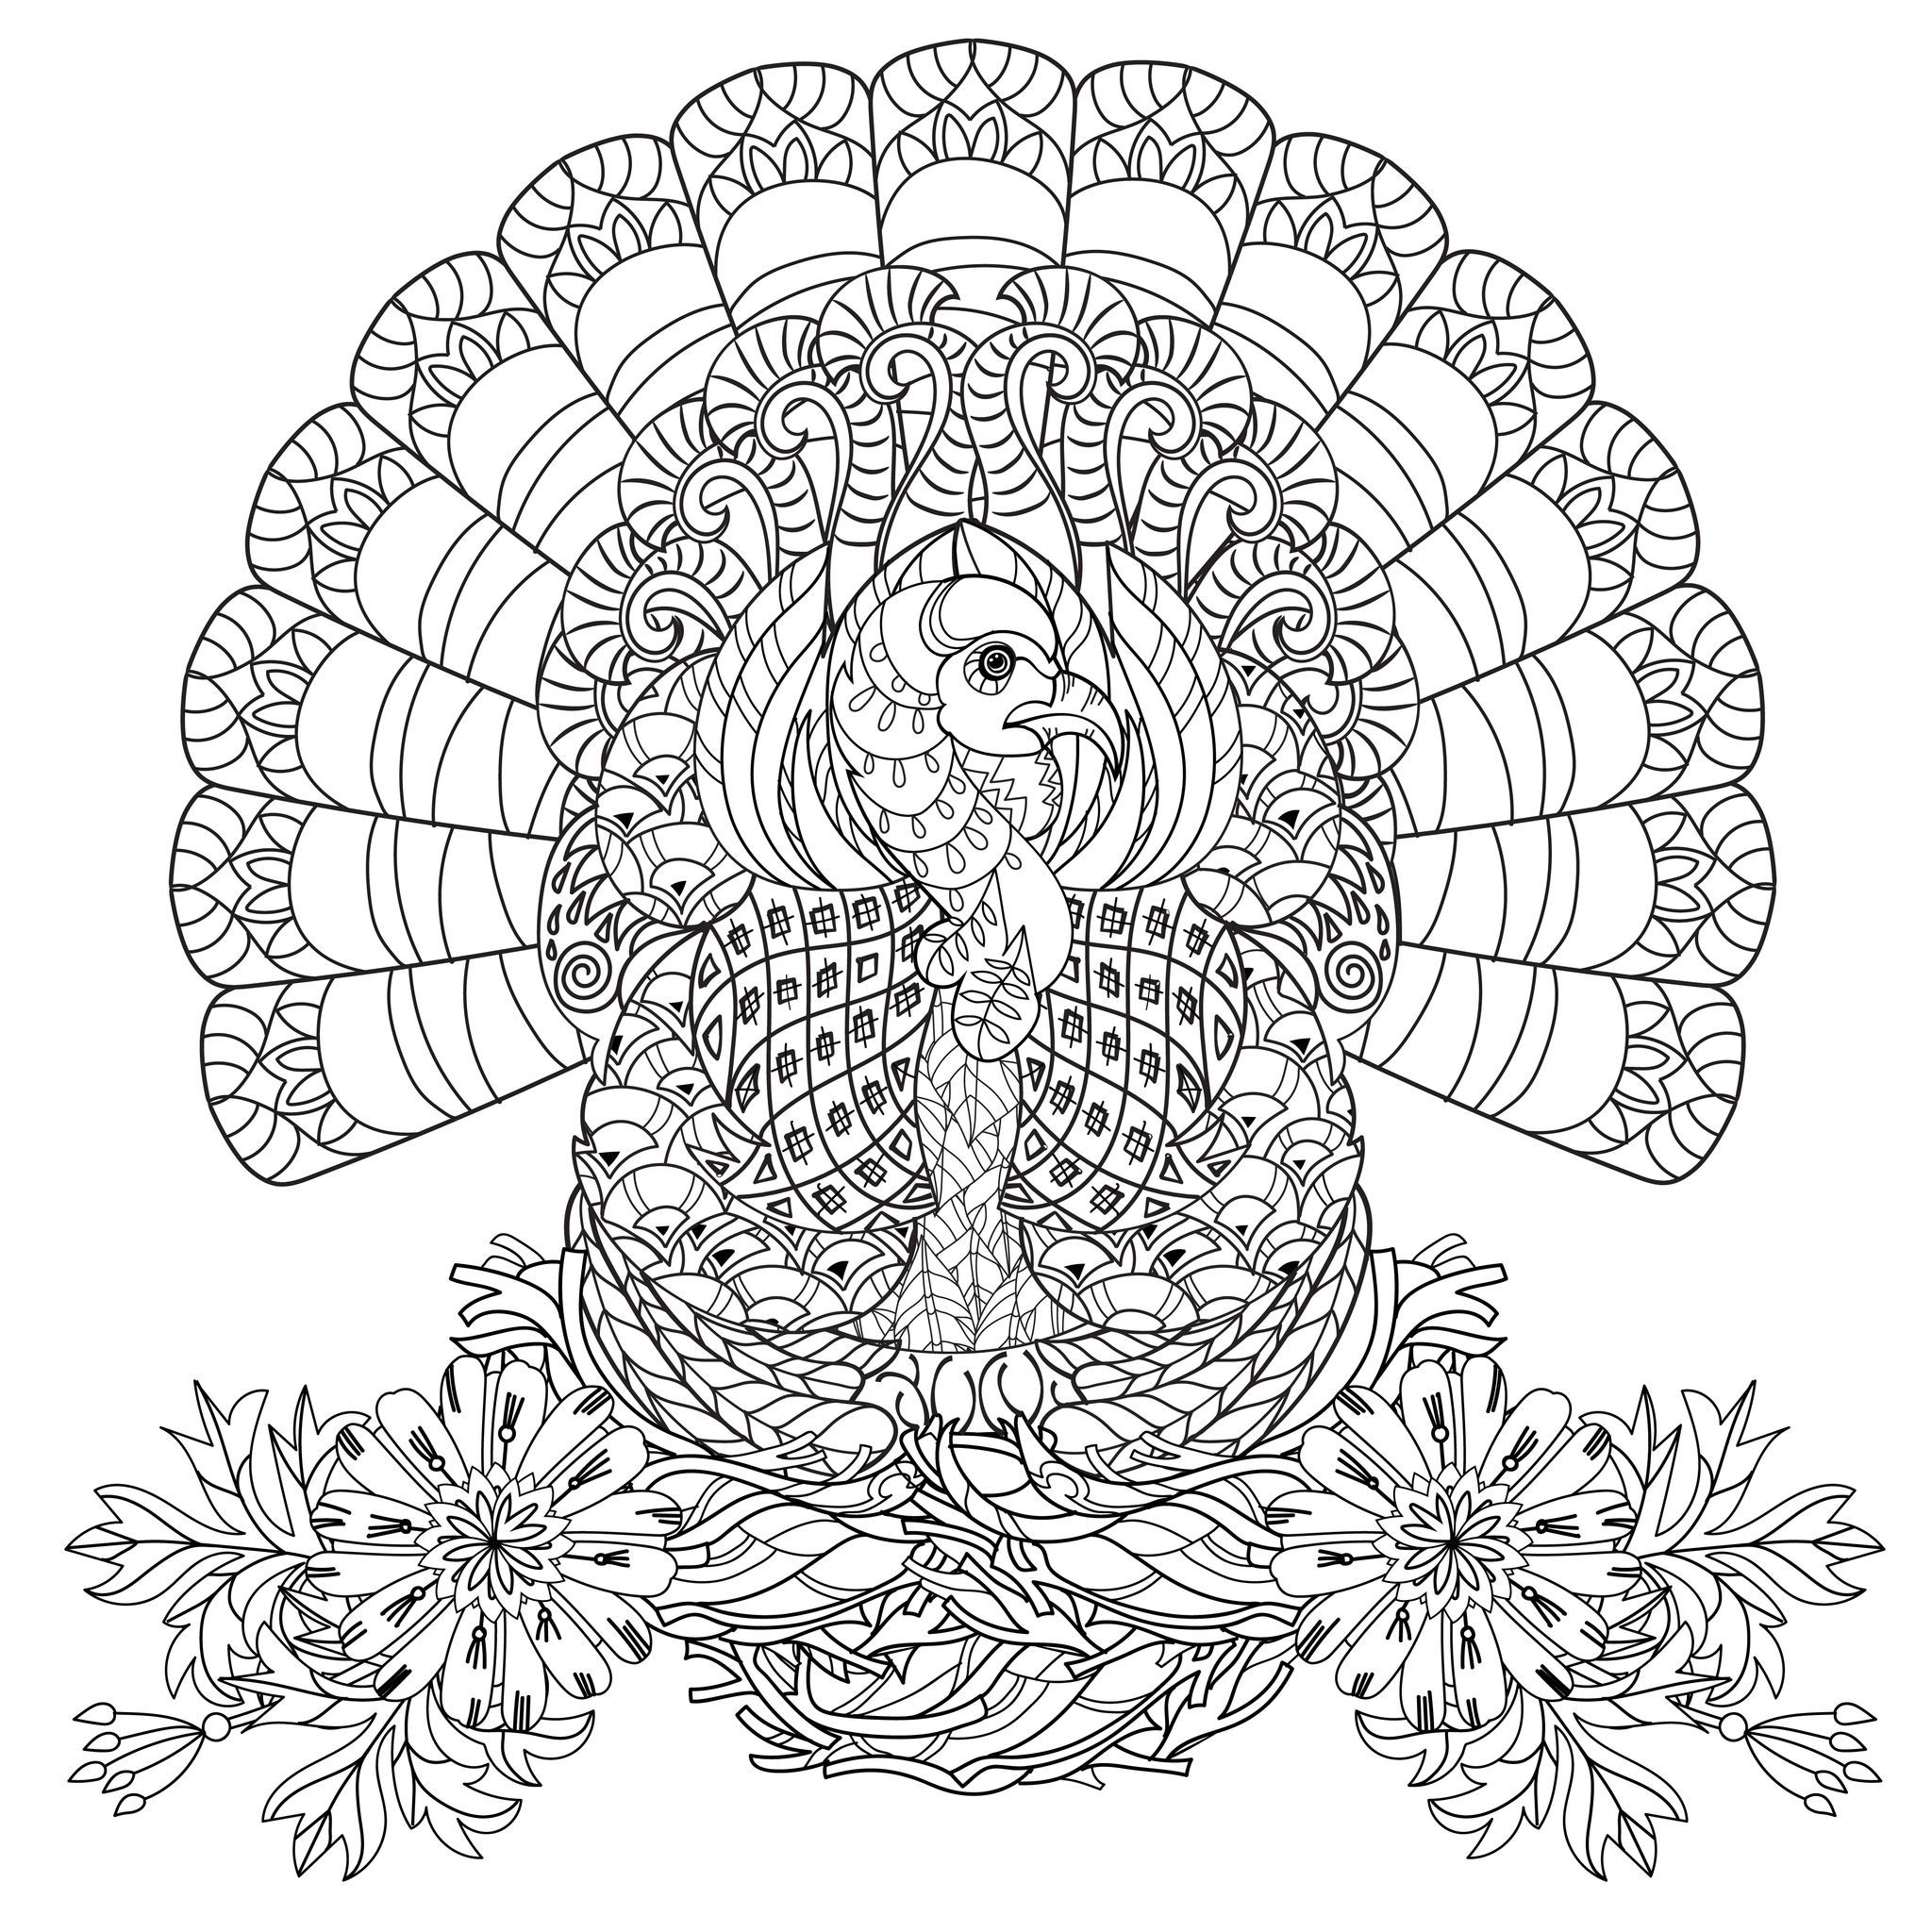 Printable adult thanksgiving coloring sheet - Beautiful Turkey Very Well Decorated With Flowers The Perfect Coloring Page Thanksgiving